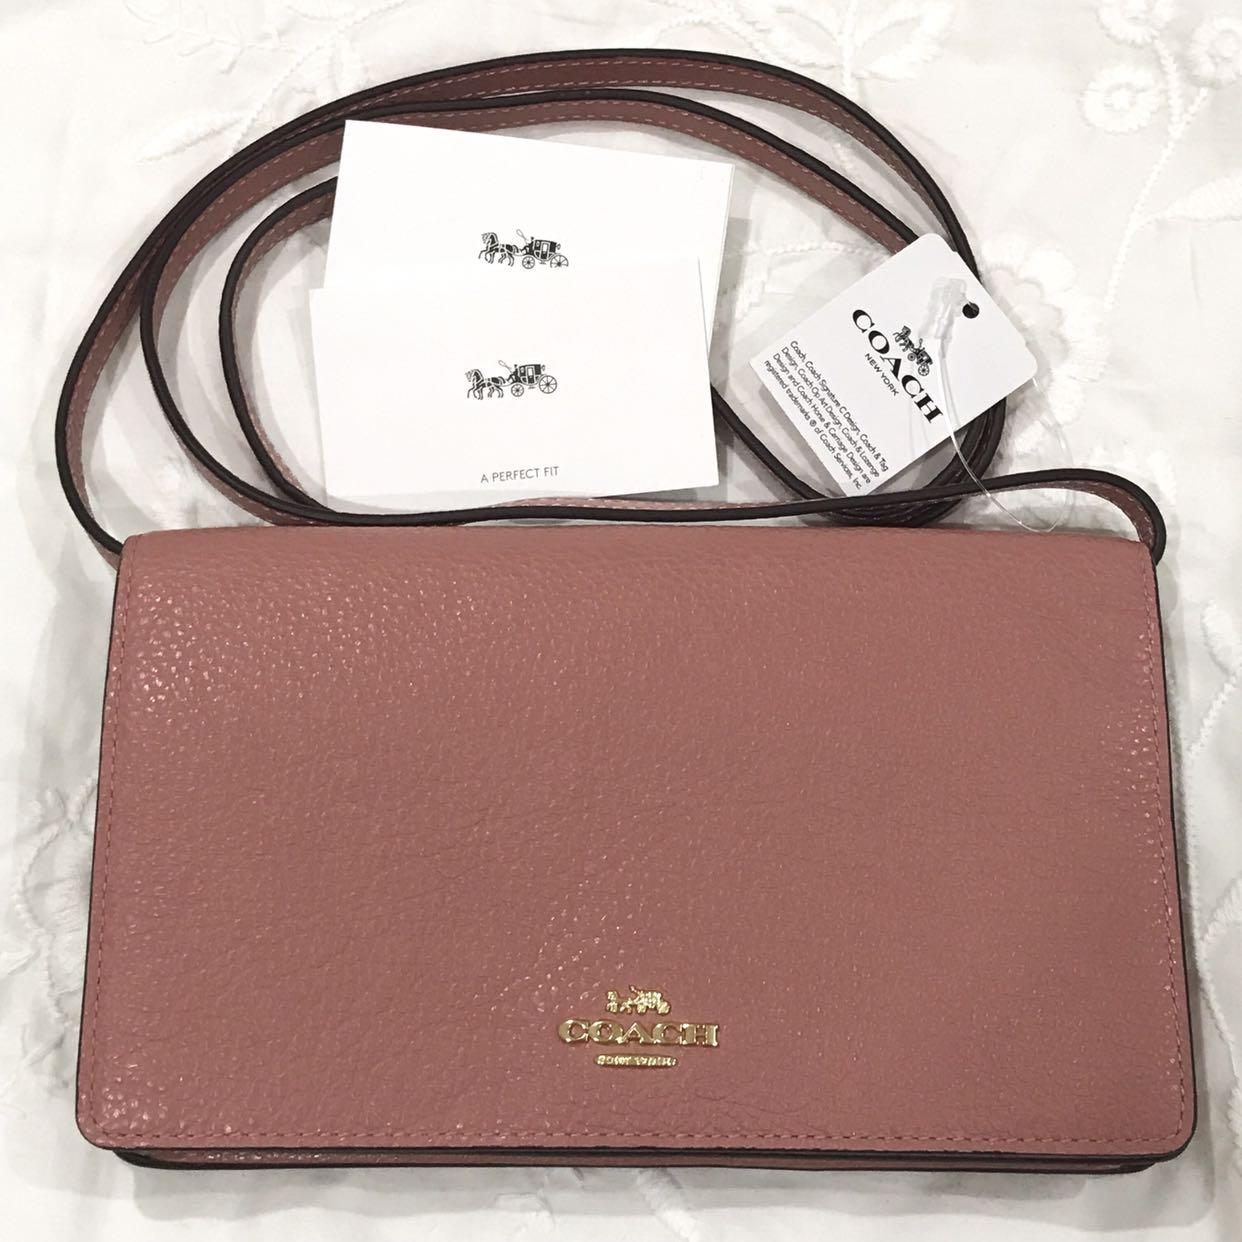 Brand NEW (Tags and cards attached) COACH foldover crossbody clutch in pebbled leather (Vintage Pink)